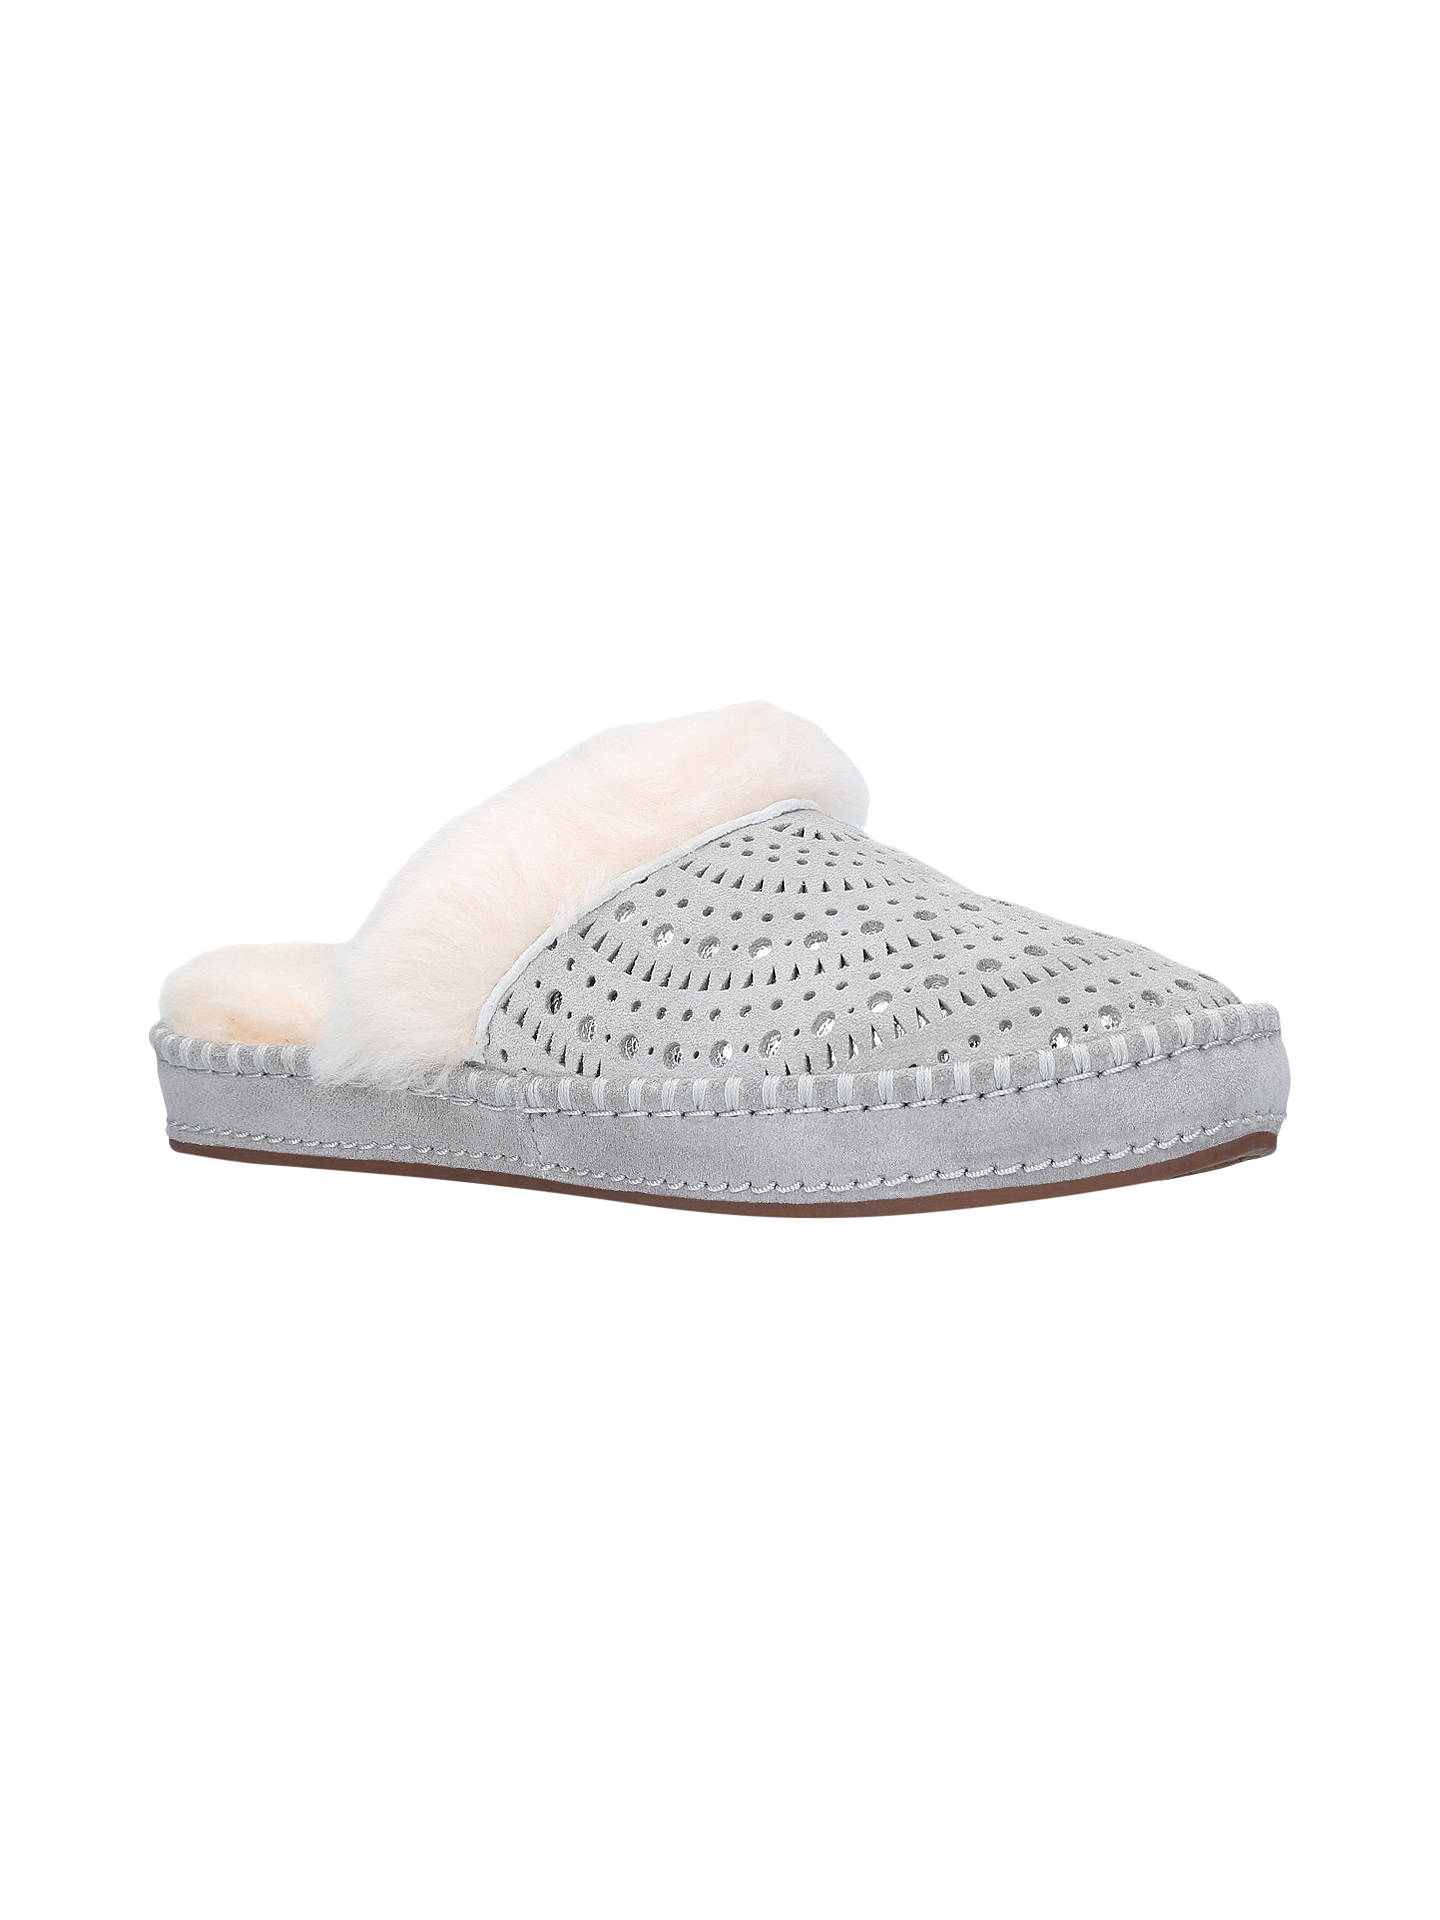 0a220aa4652 UGG Aira Mule Slippers, Grey Suede at John Lewis & Partners